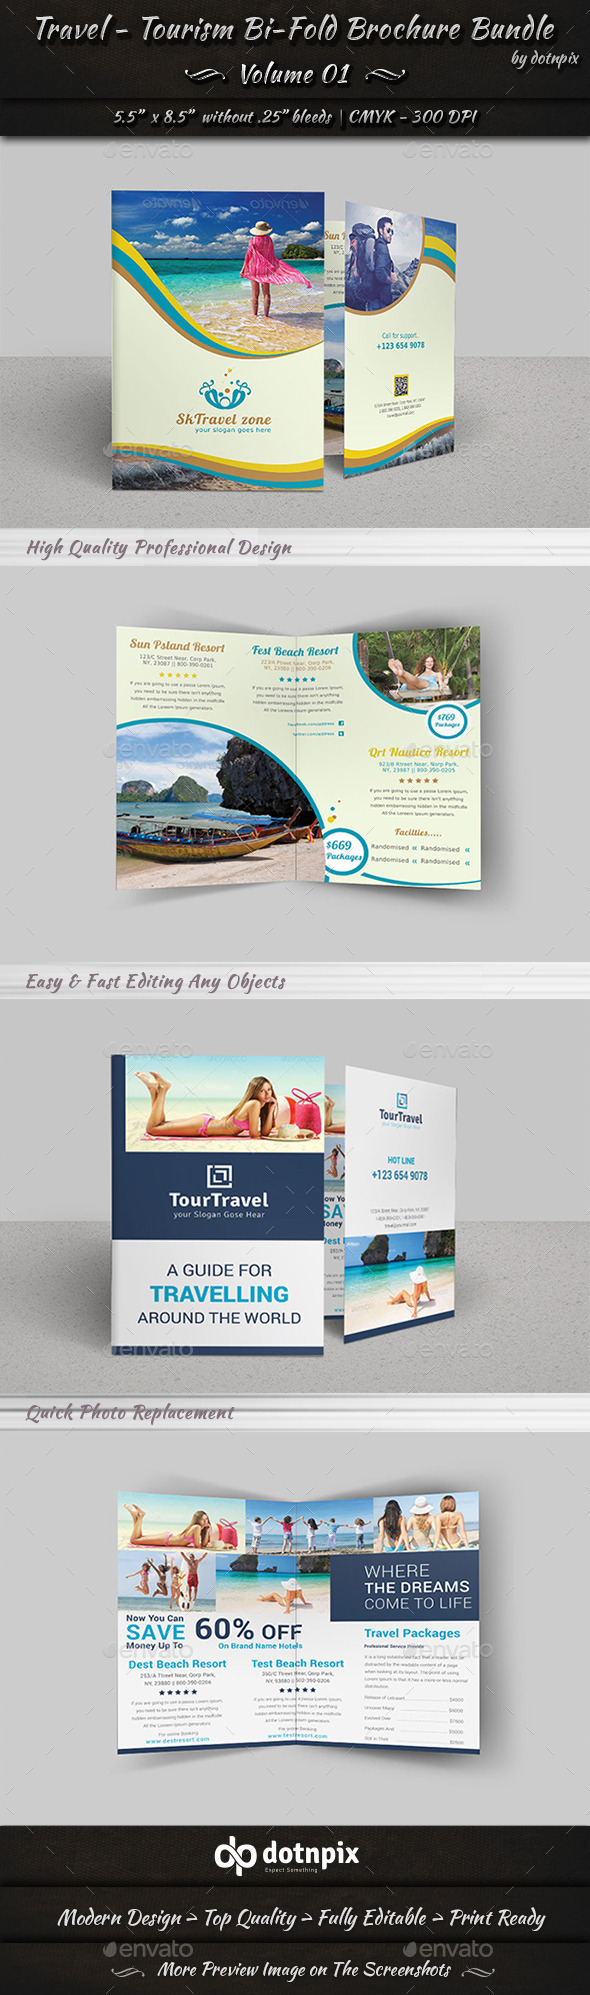 Travel / Tourism Bi-Fold Brochure Bundle | v1 - Corporate Brochures